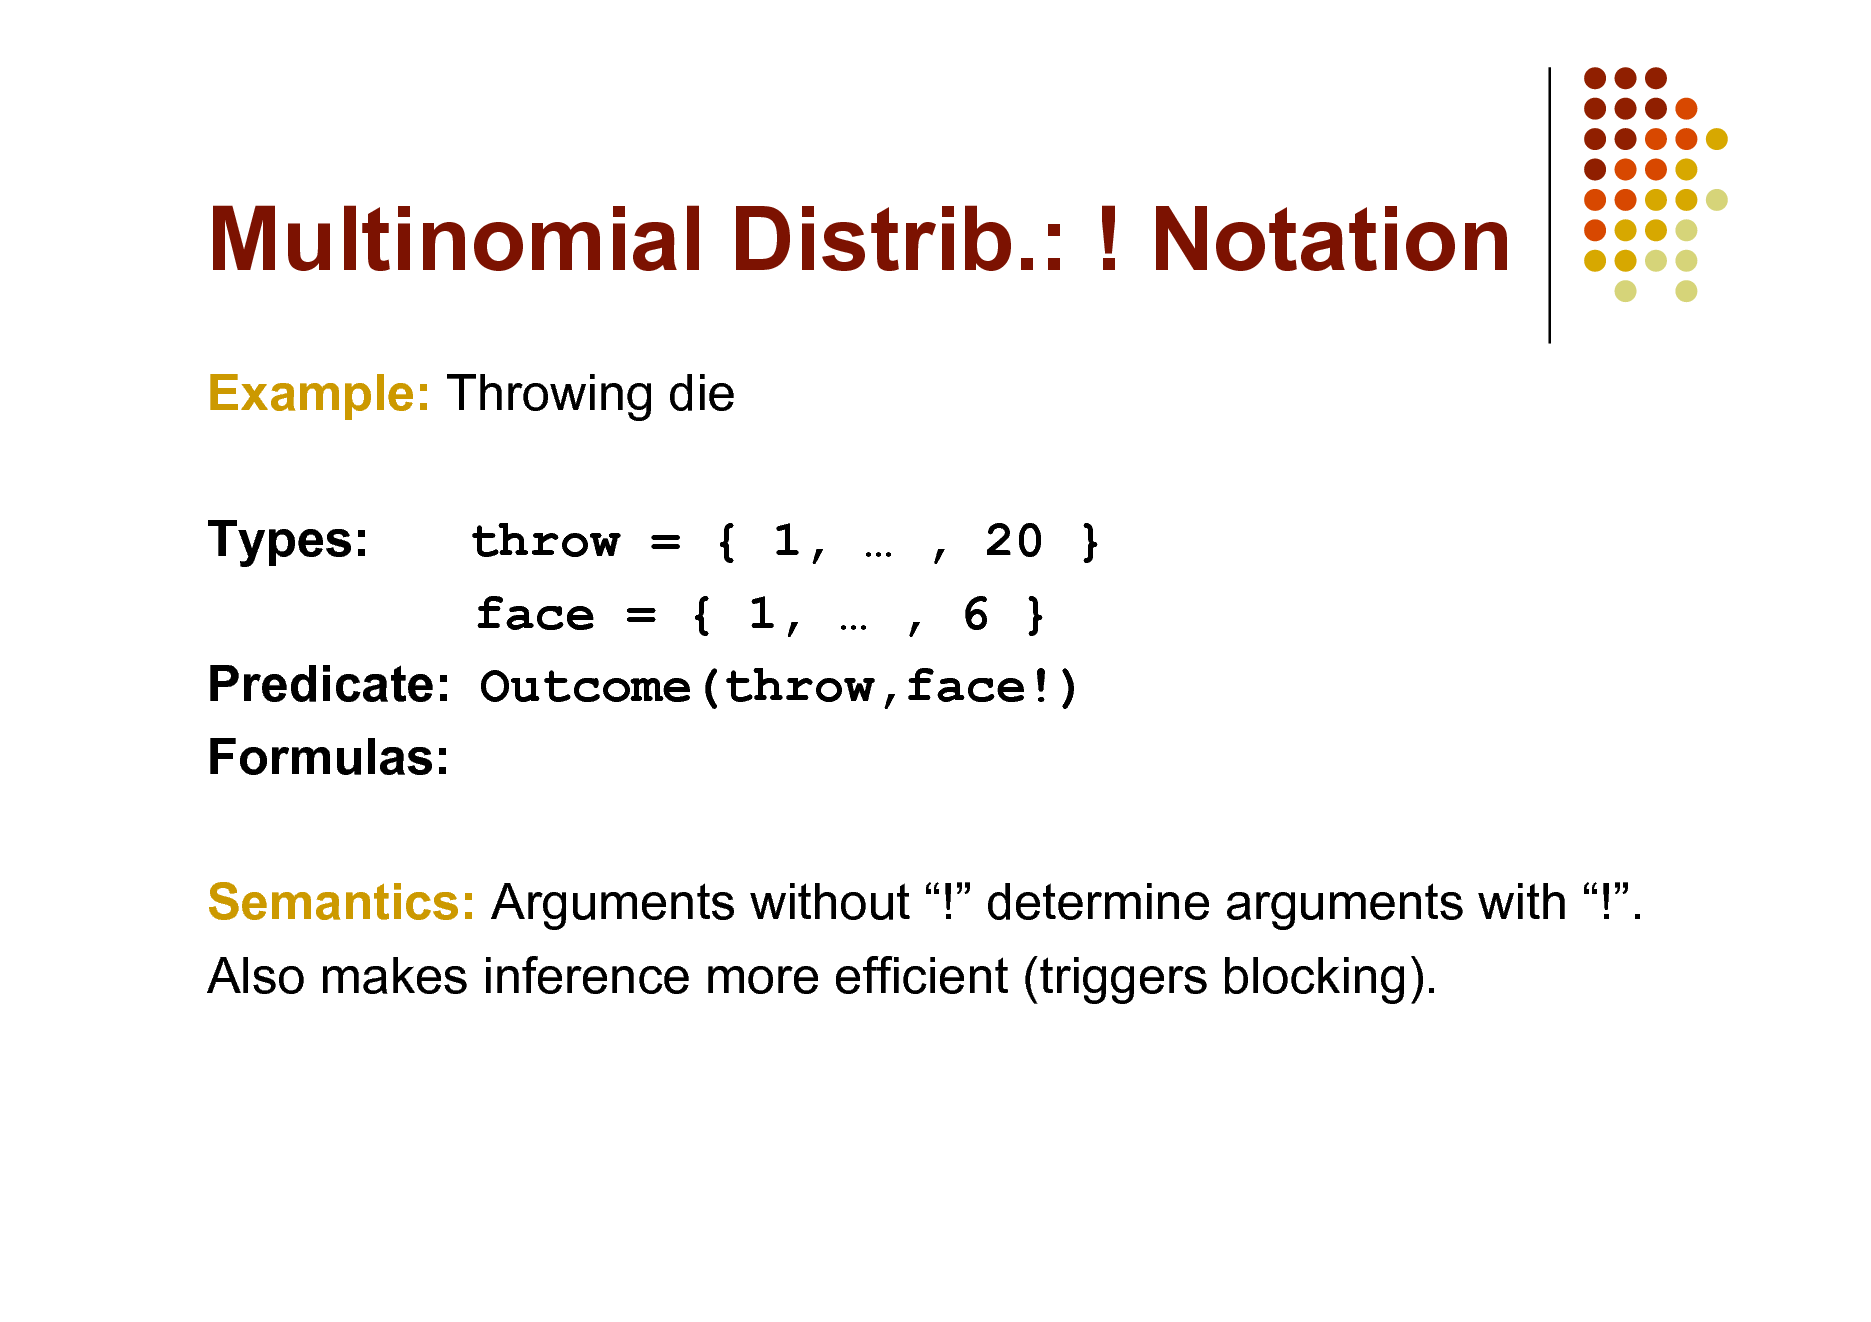 Slide: Multinomial Distrib.: ! Notation Example: Throwing die Types: throw = { 1,  , 20 } face = { 1,  , 6 } Predicate: Outcome(throw,face!) Formulas: Semantics: Arguments without ! determine arguments with !. Also makes inference more efficient (triggers blocking).